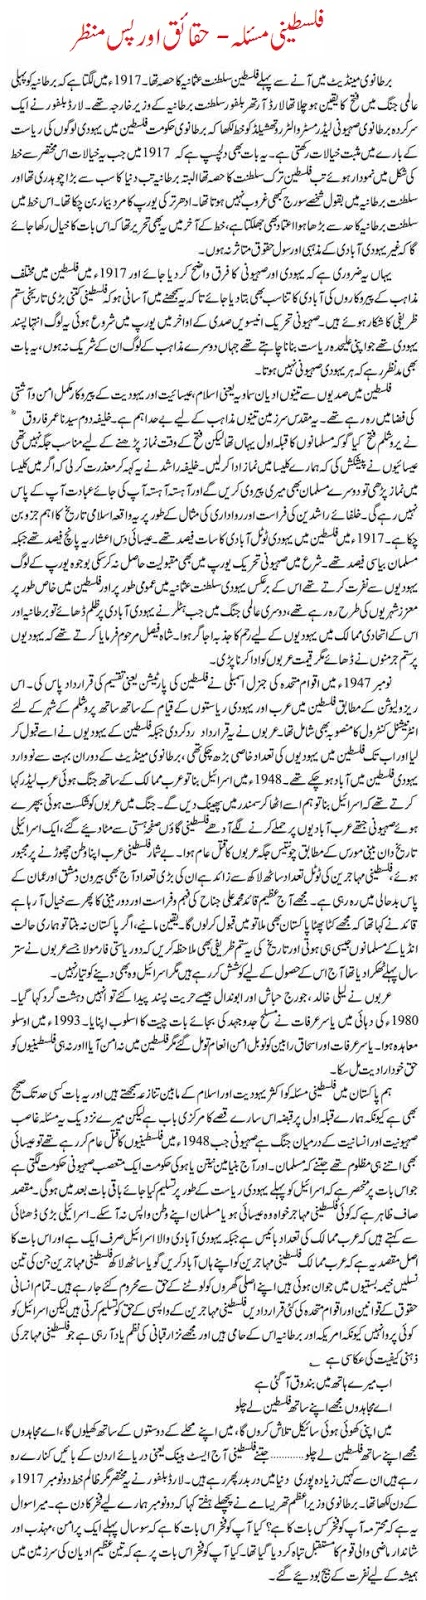 urdu kahani issue in urdu essay on i   i palestinian conflict in urdu